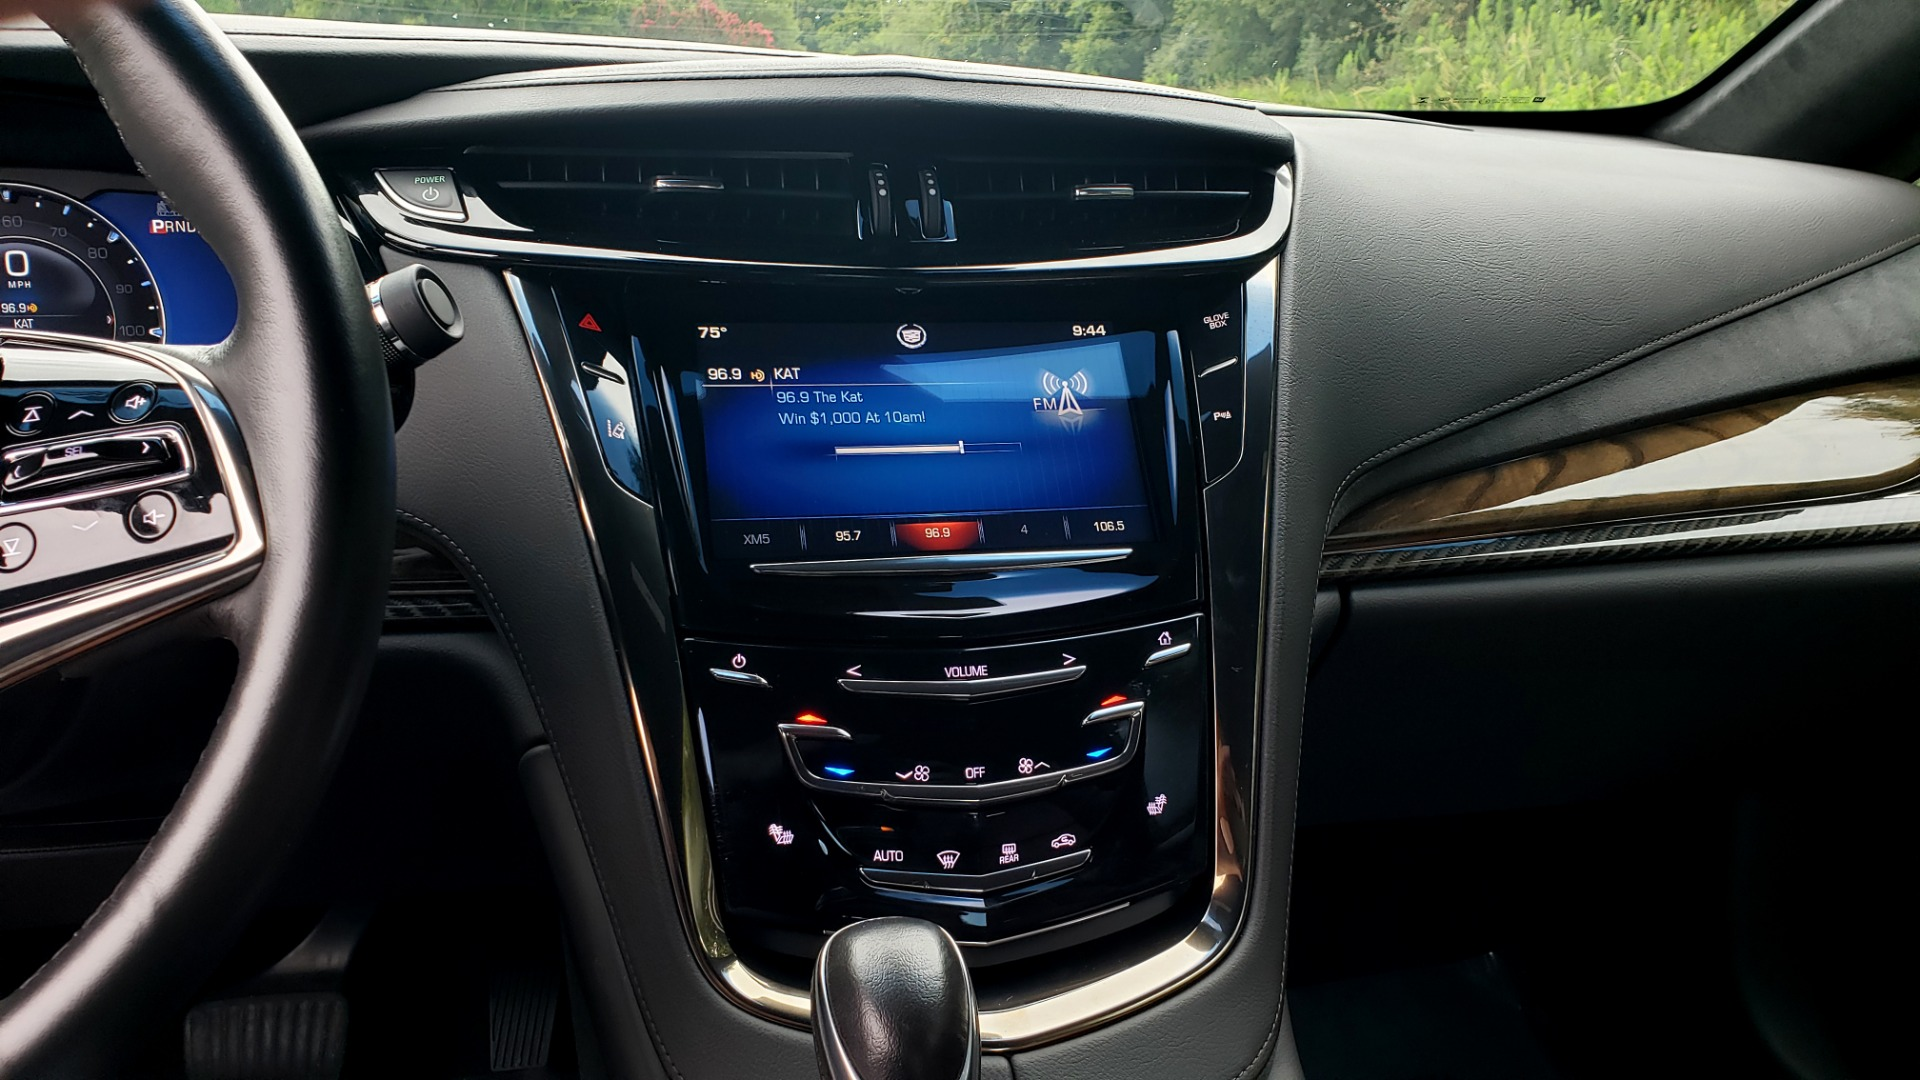 Used 2014 Cadillac ELR 2DR COUPE / HYBRID / NAV / BOSE / HEATED SEATS / REARVIEW for sale $34,000 at Formula Imports in Charlotte NC 28227 37